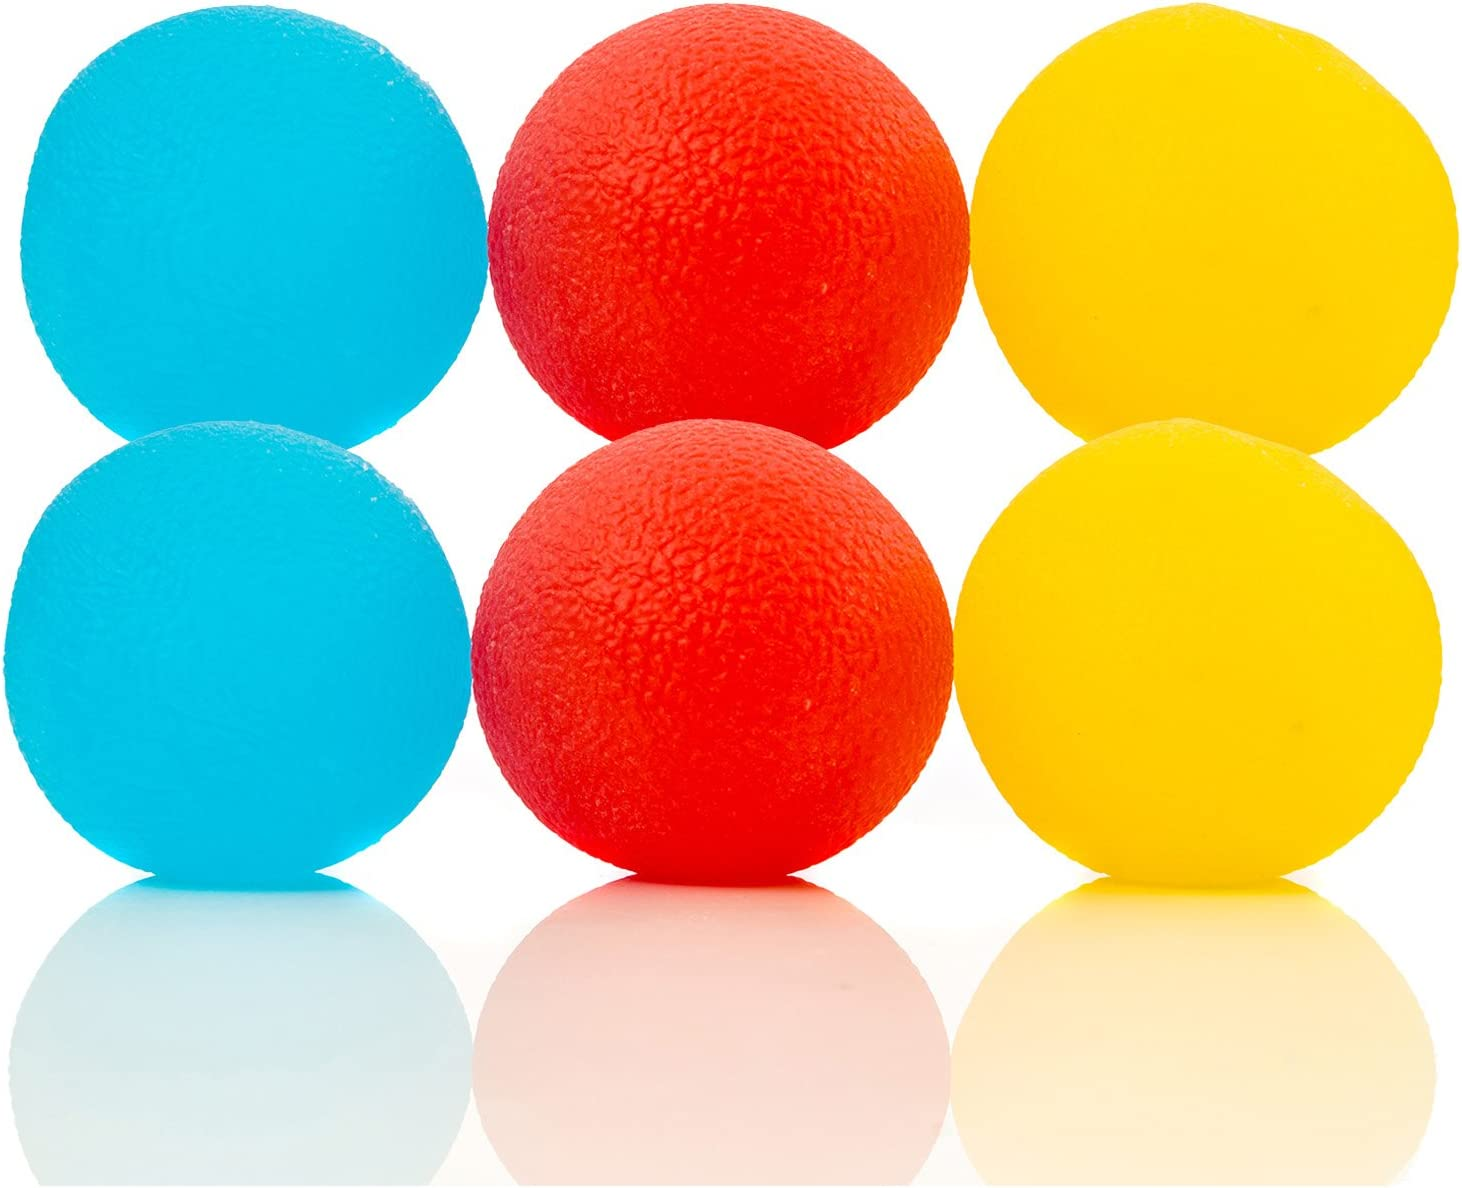 Impresa Products 6-Pack of Stress Relief Balls - Tear-Resistant Stress Ball, Non-Toxic, BPA/Phthalate/Latex-Free (Colors as Shown)